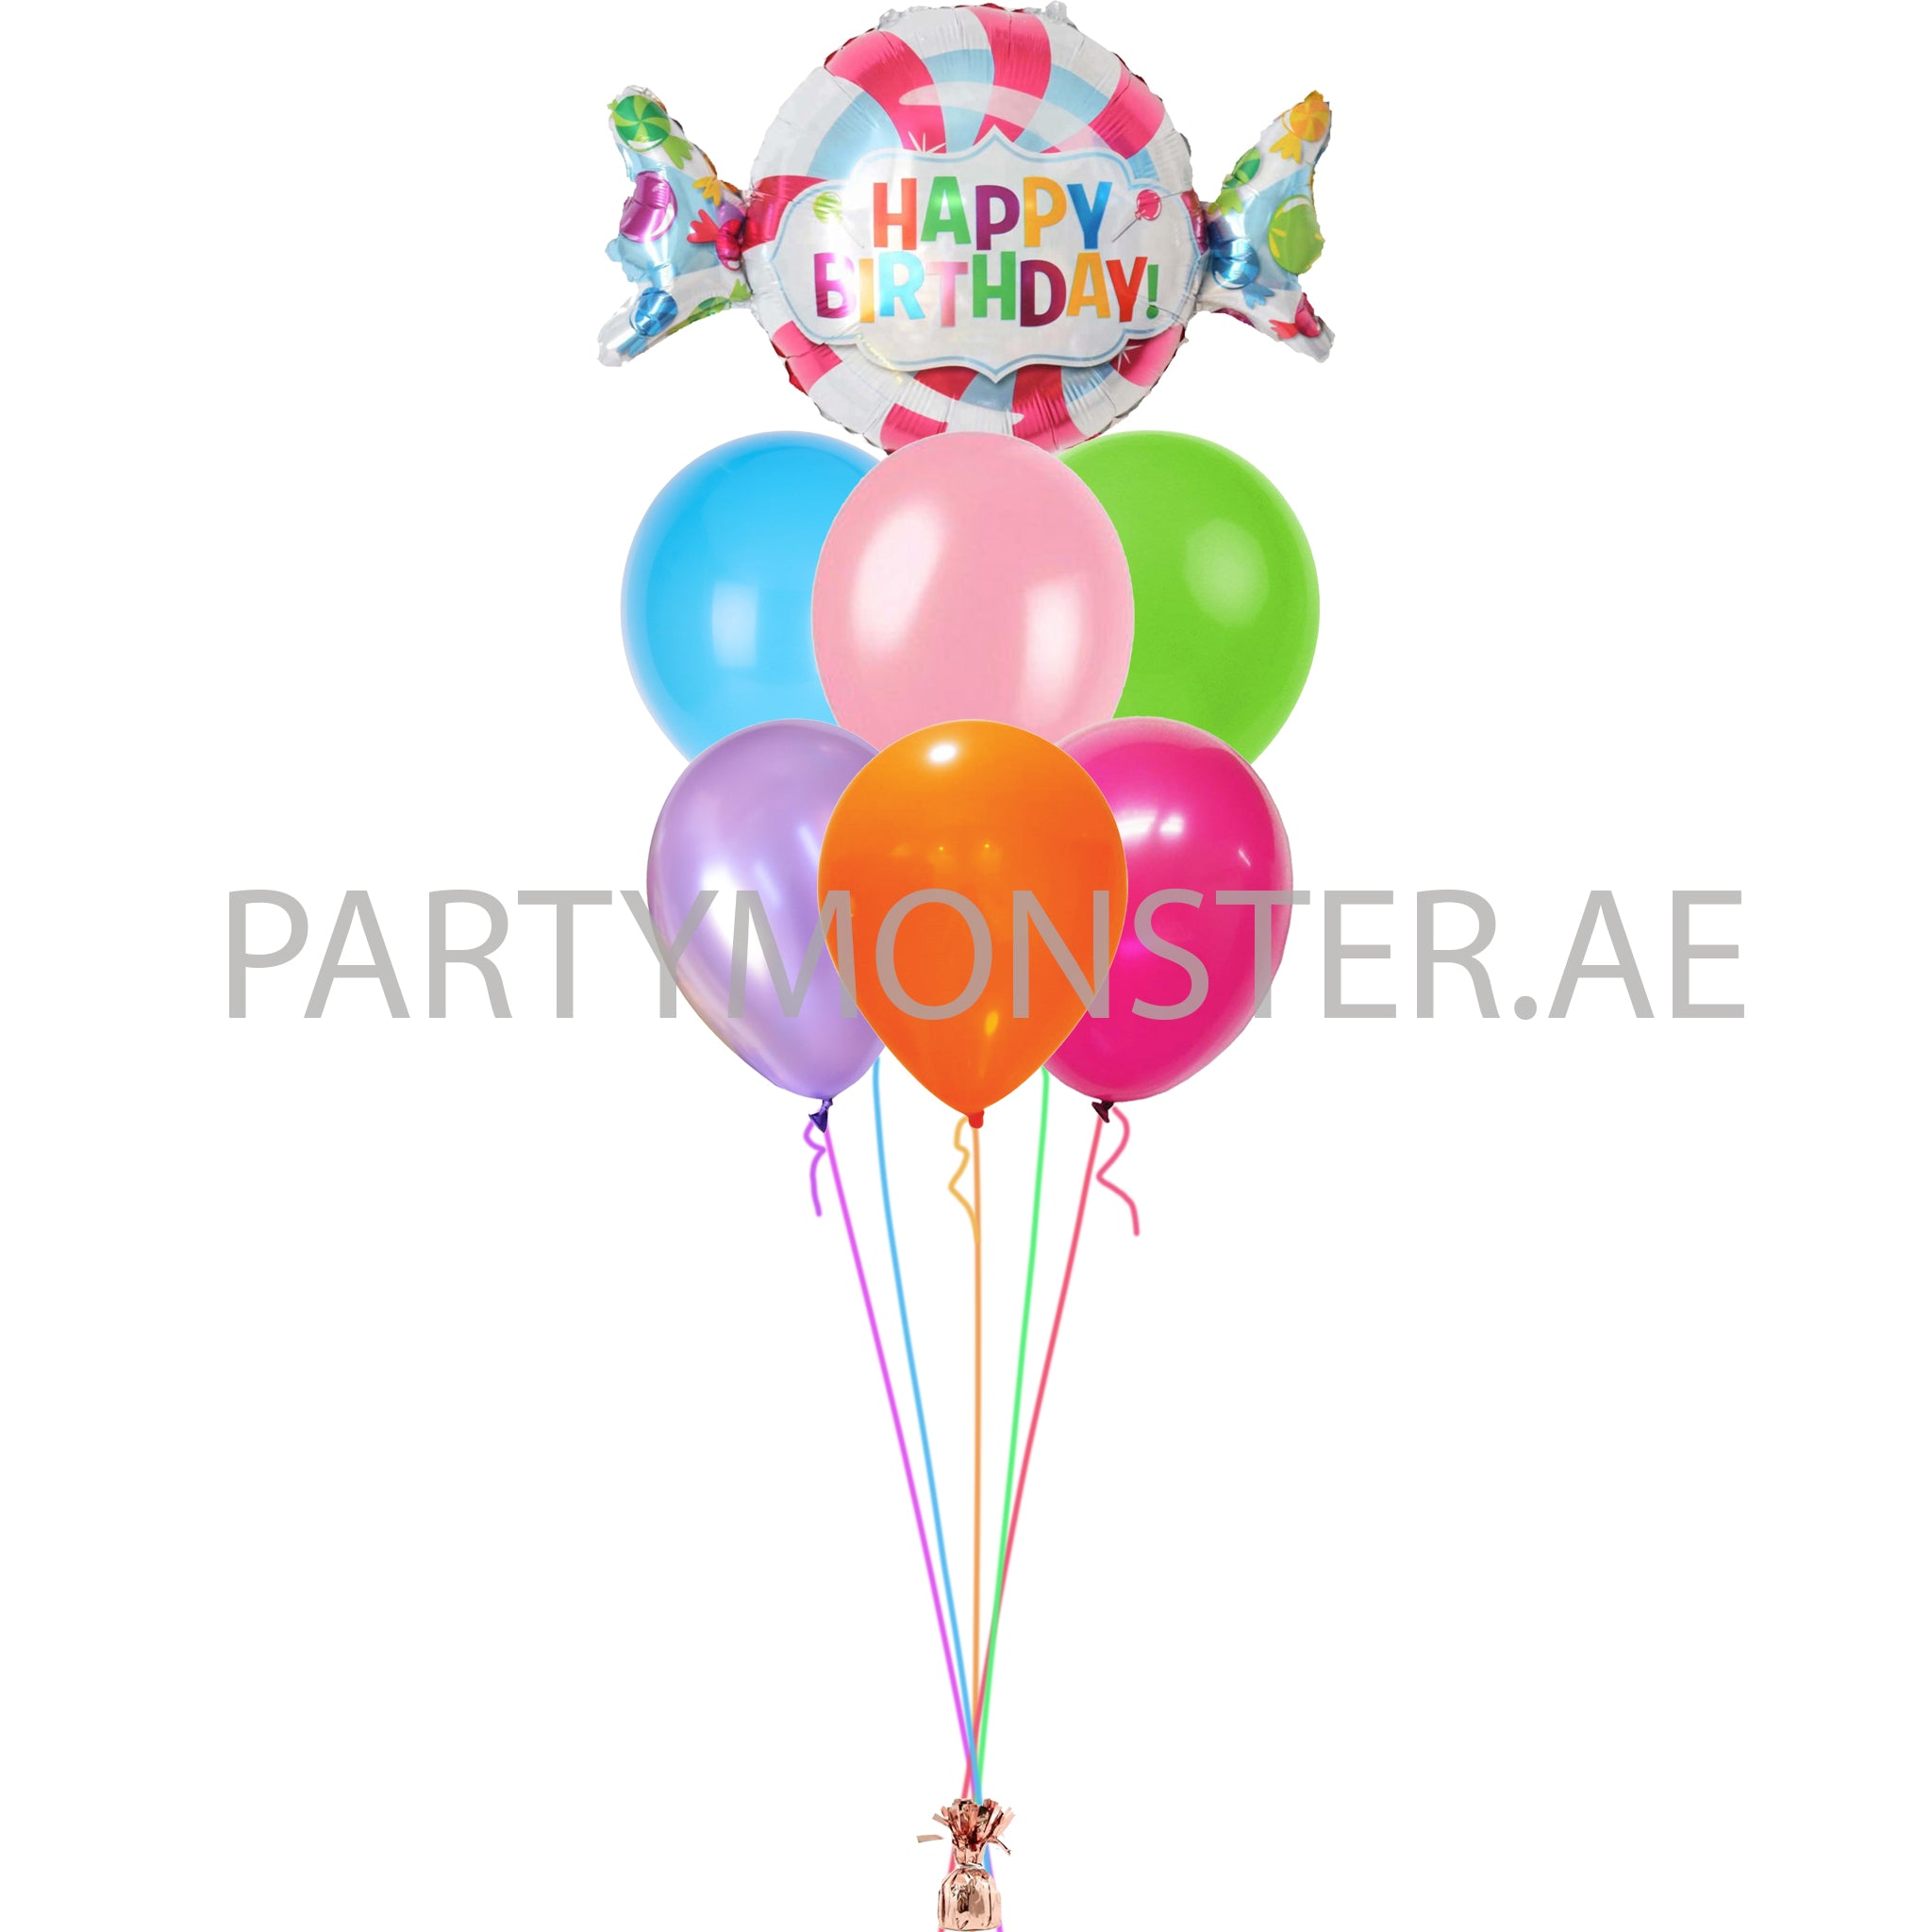 Happy birthday candy balloons bouquet - PartyMonster.ae